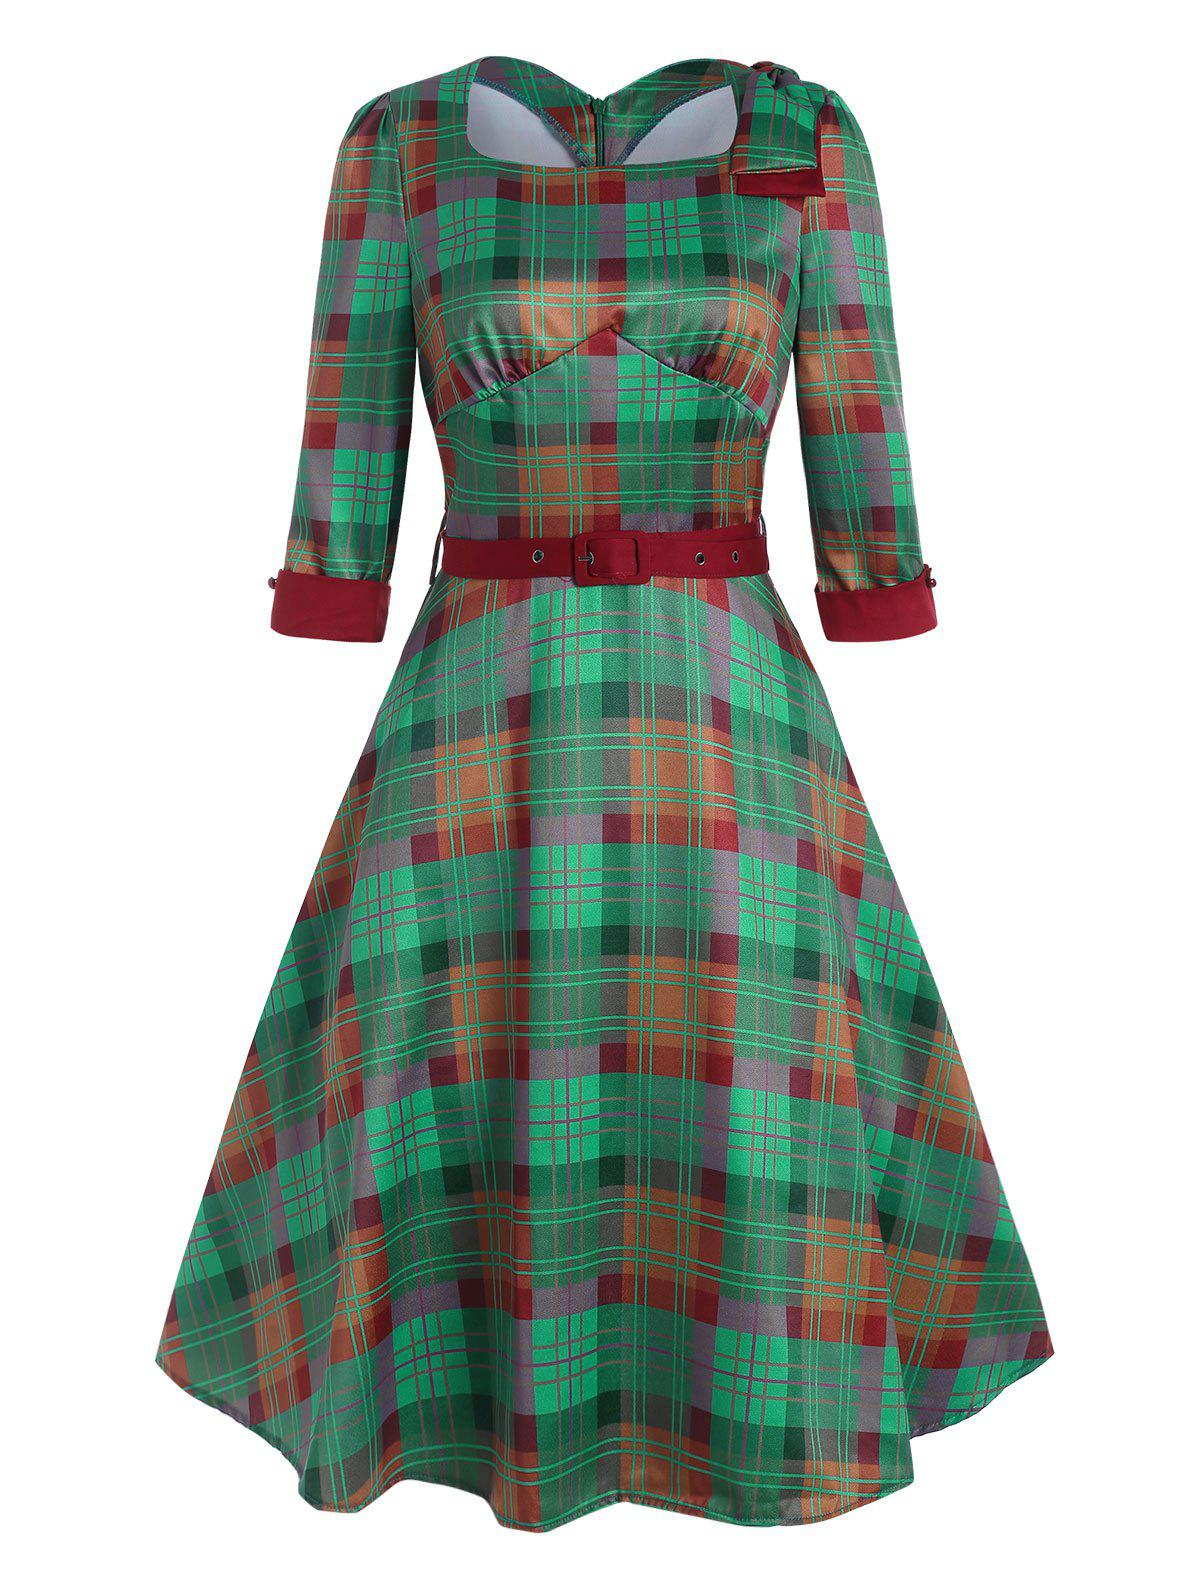 New Vintage Plaid Bowknot Belted Dress